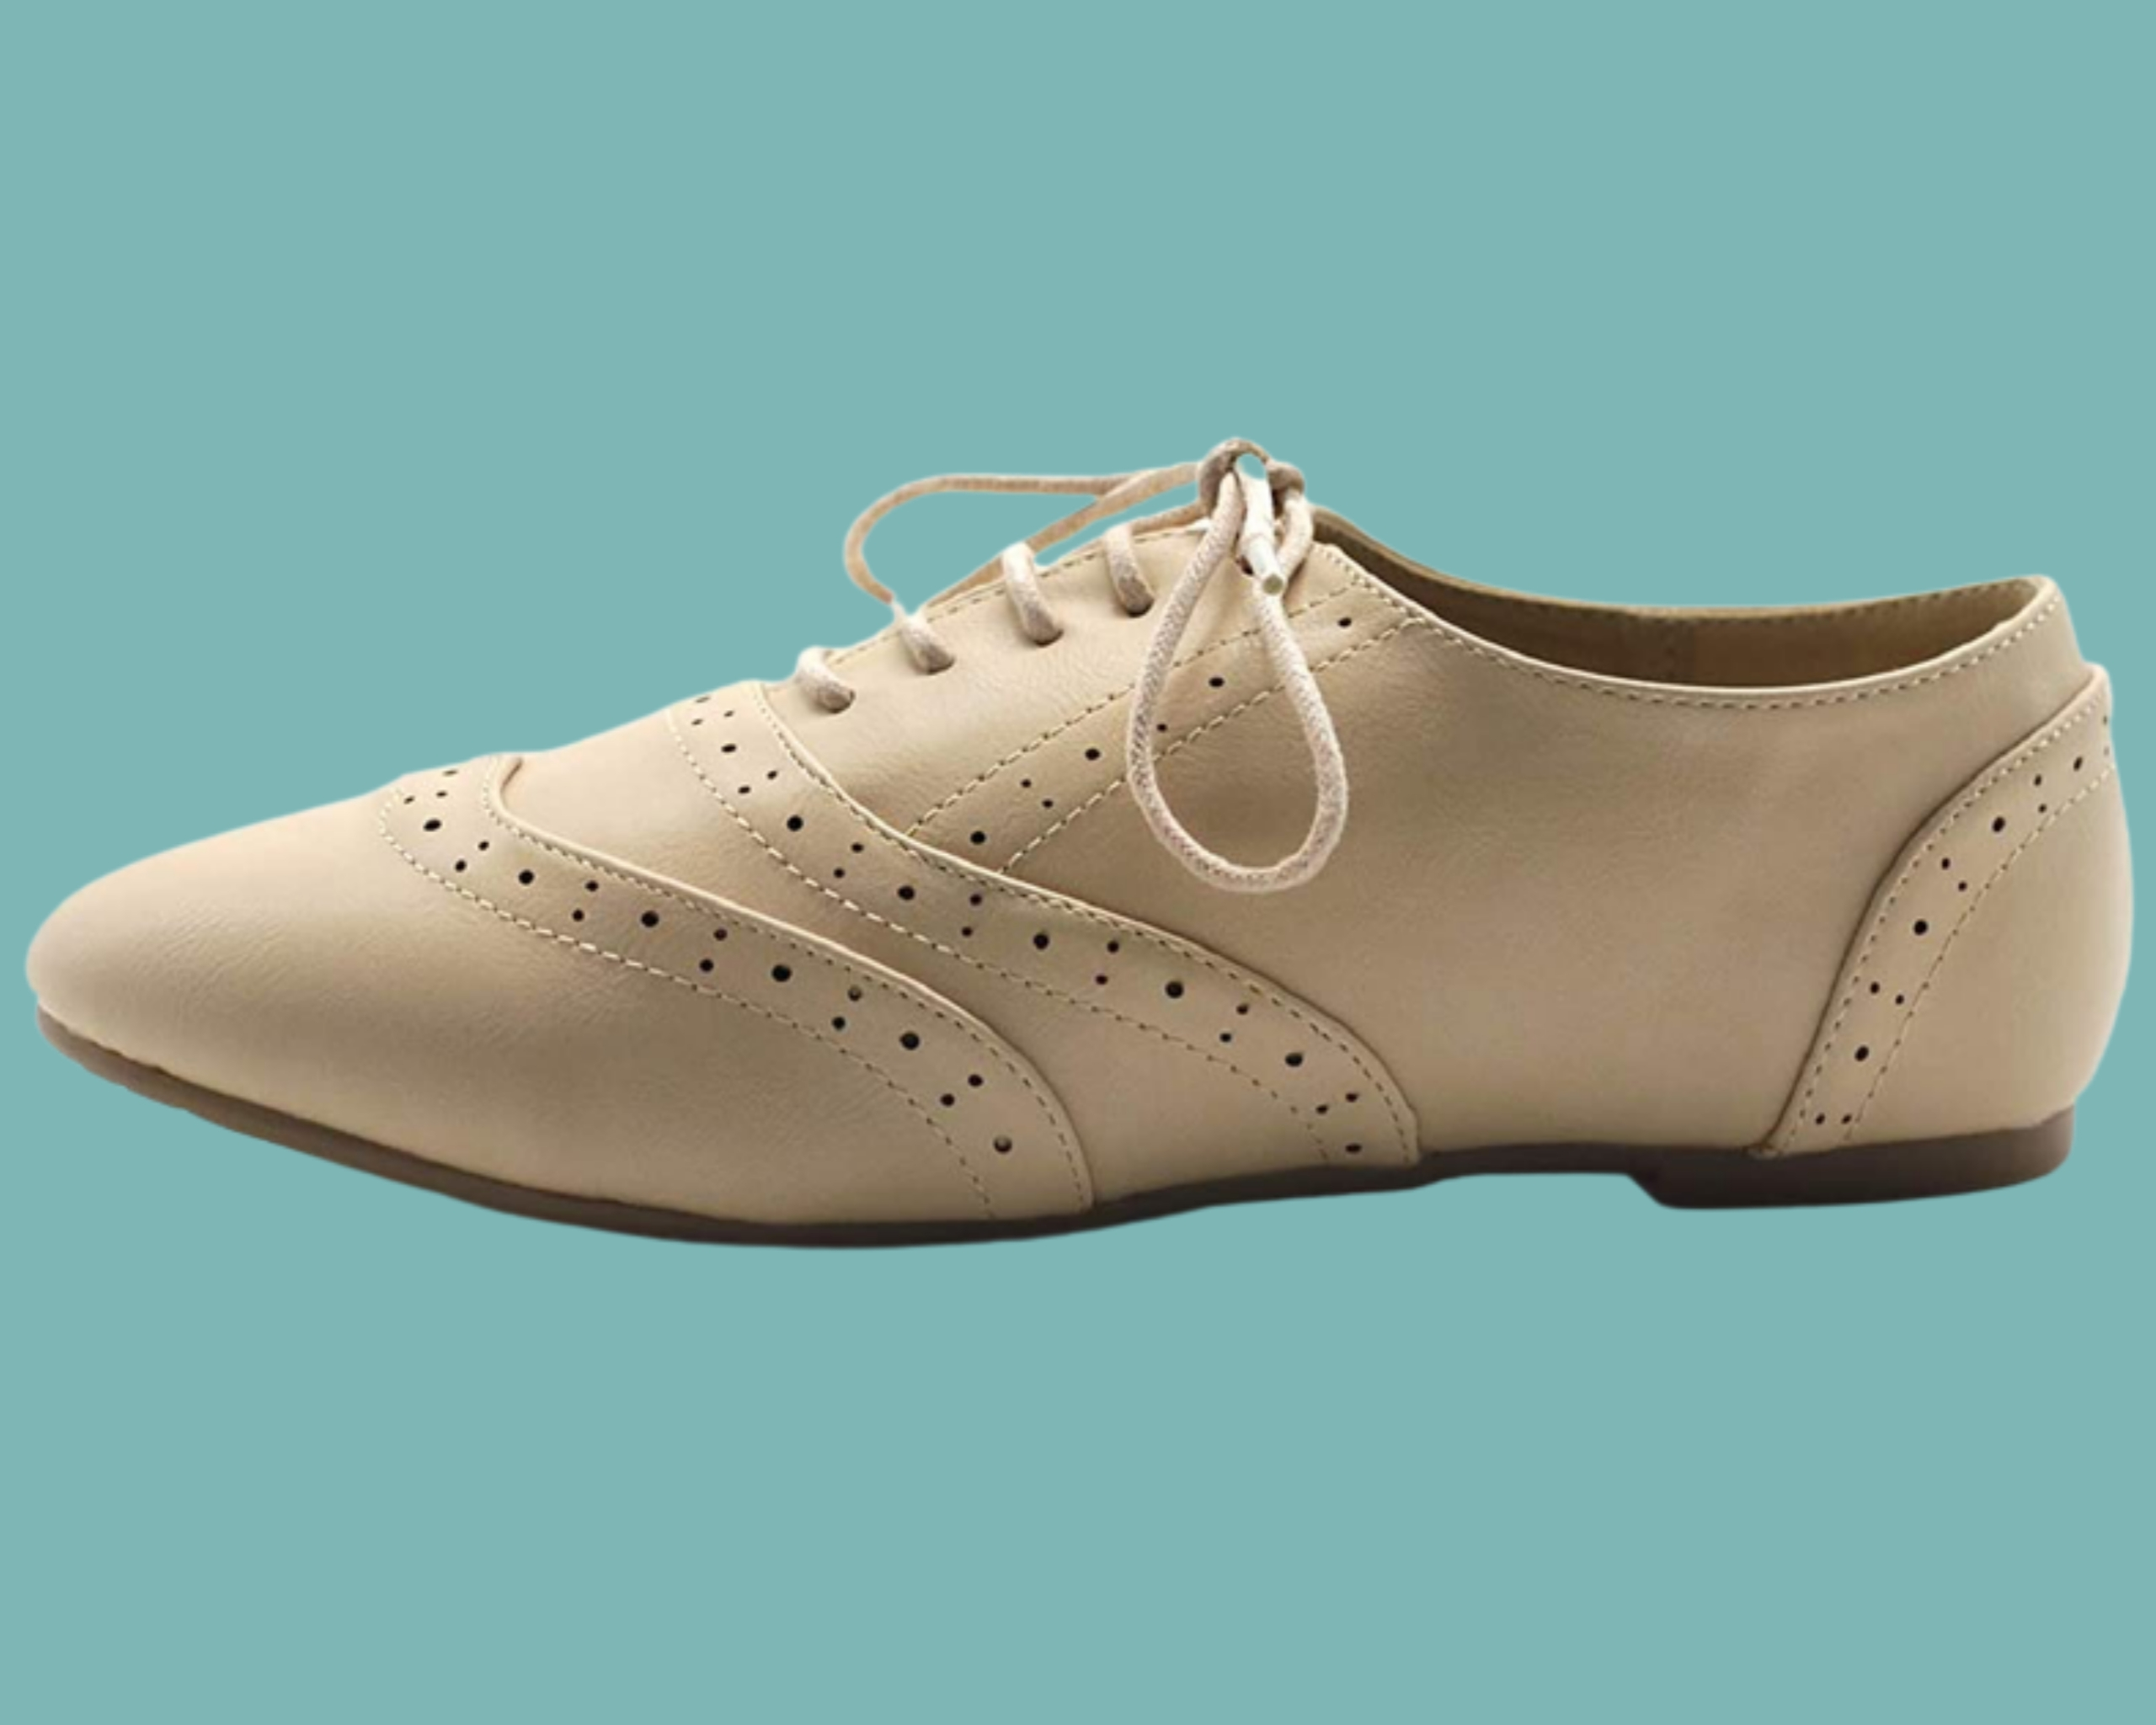 Best flat Oxford shoes for women